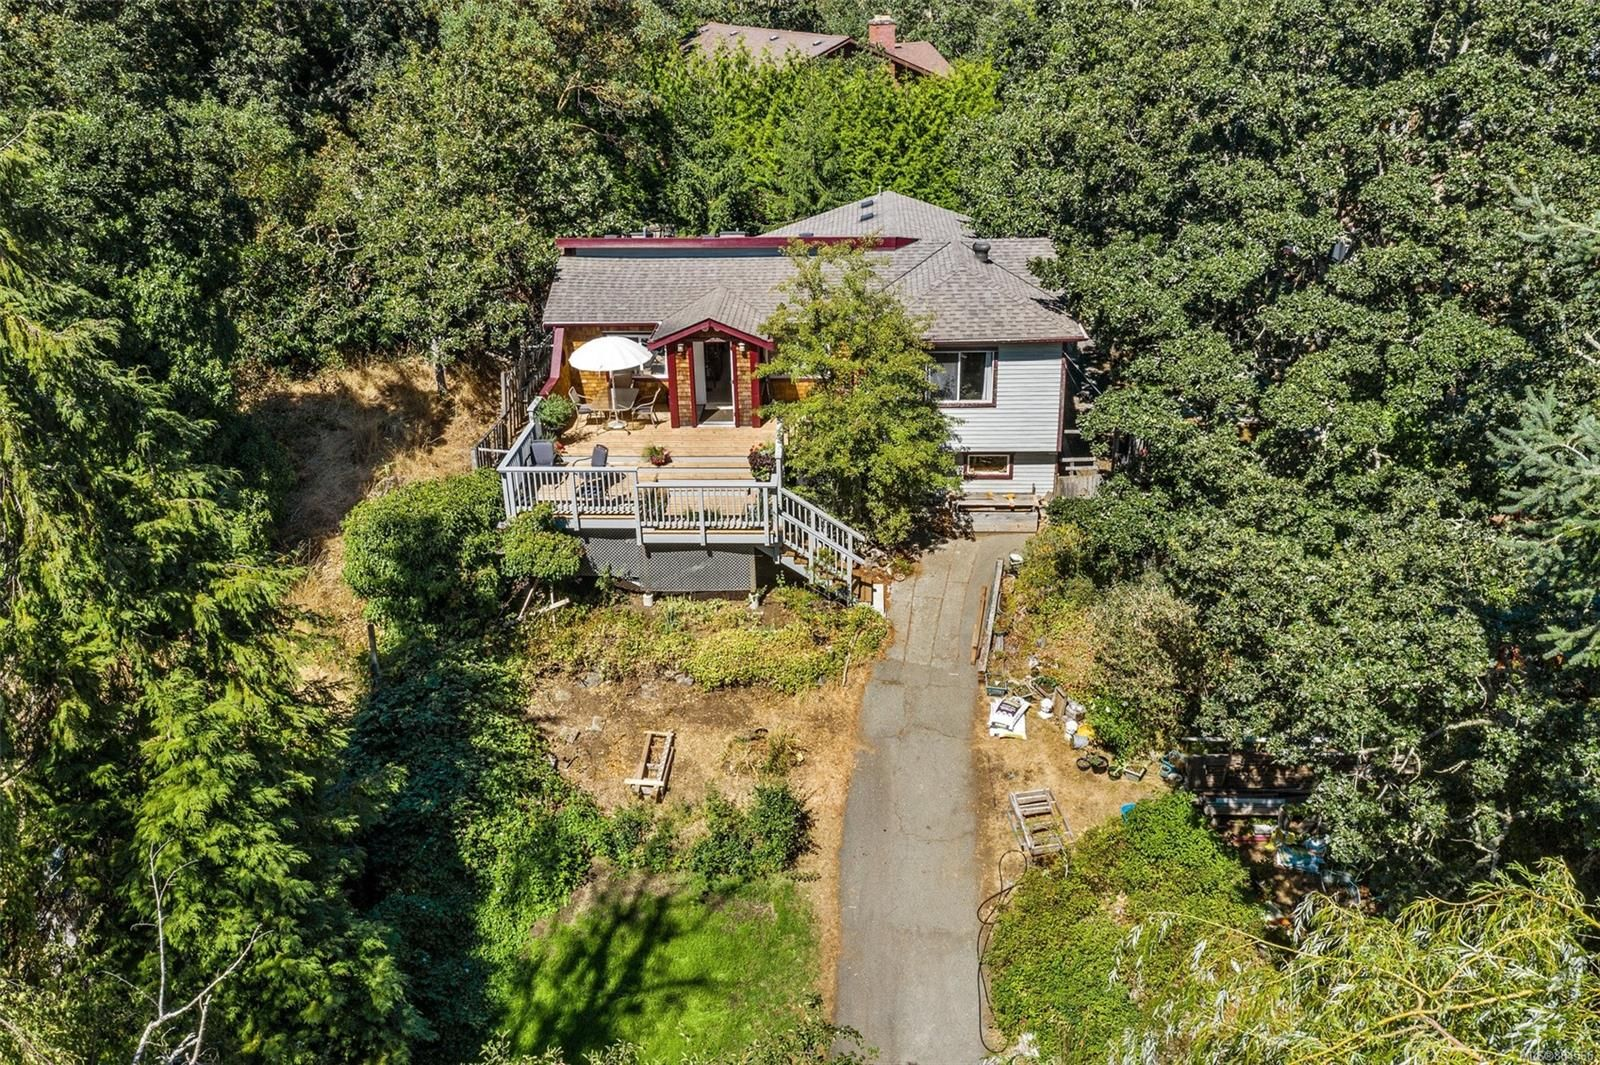 Main Photo: 1116 Donna Ave in : La Langford Lake House for sale (Langford)  : MLS®# 884566